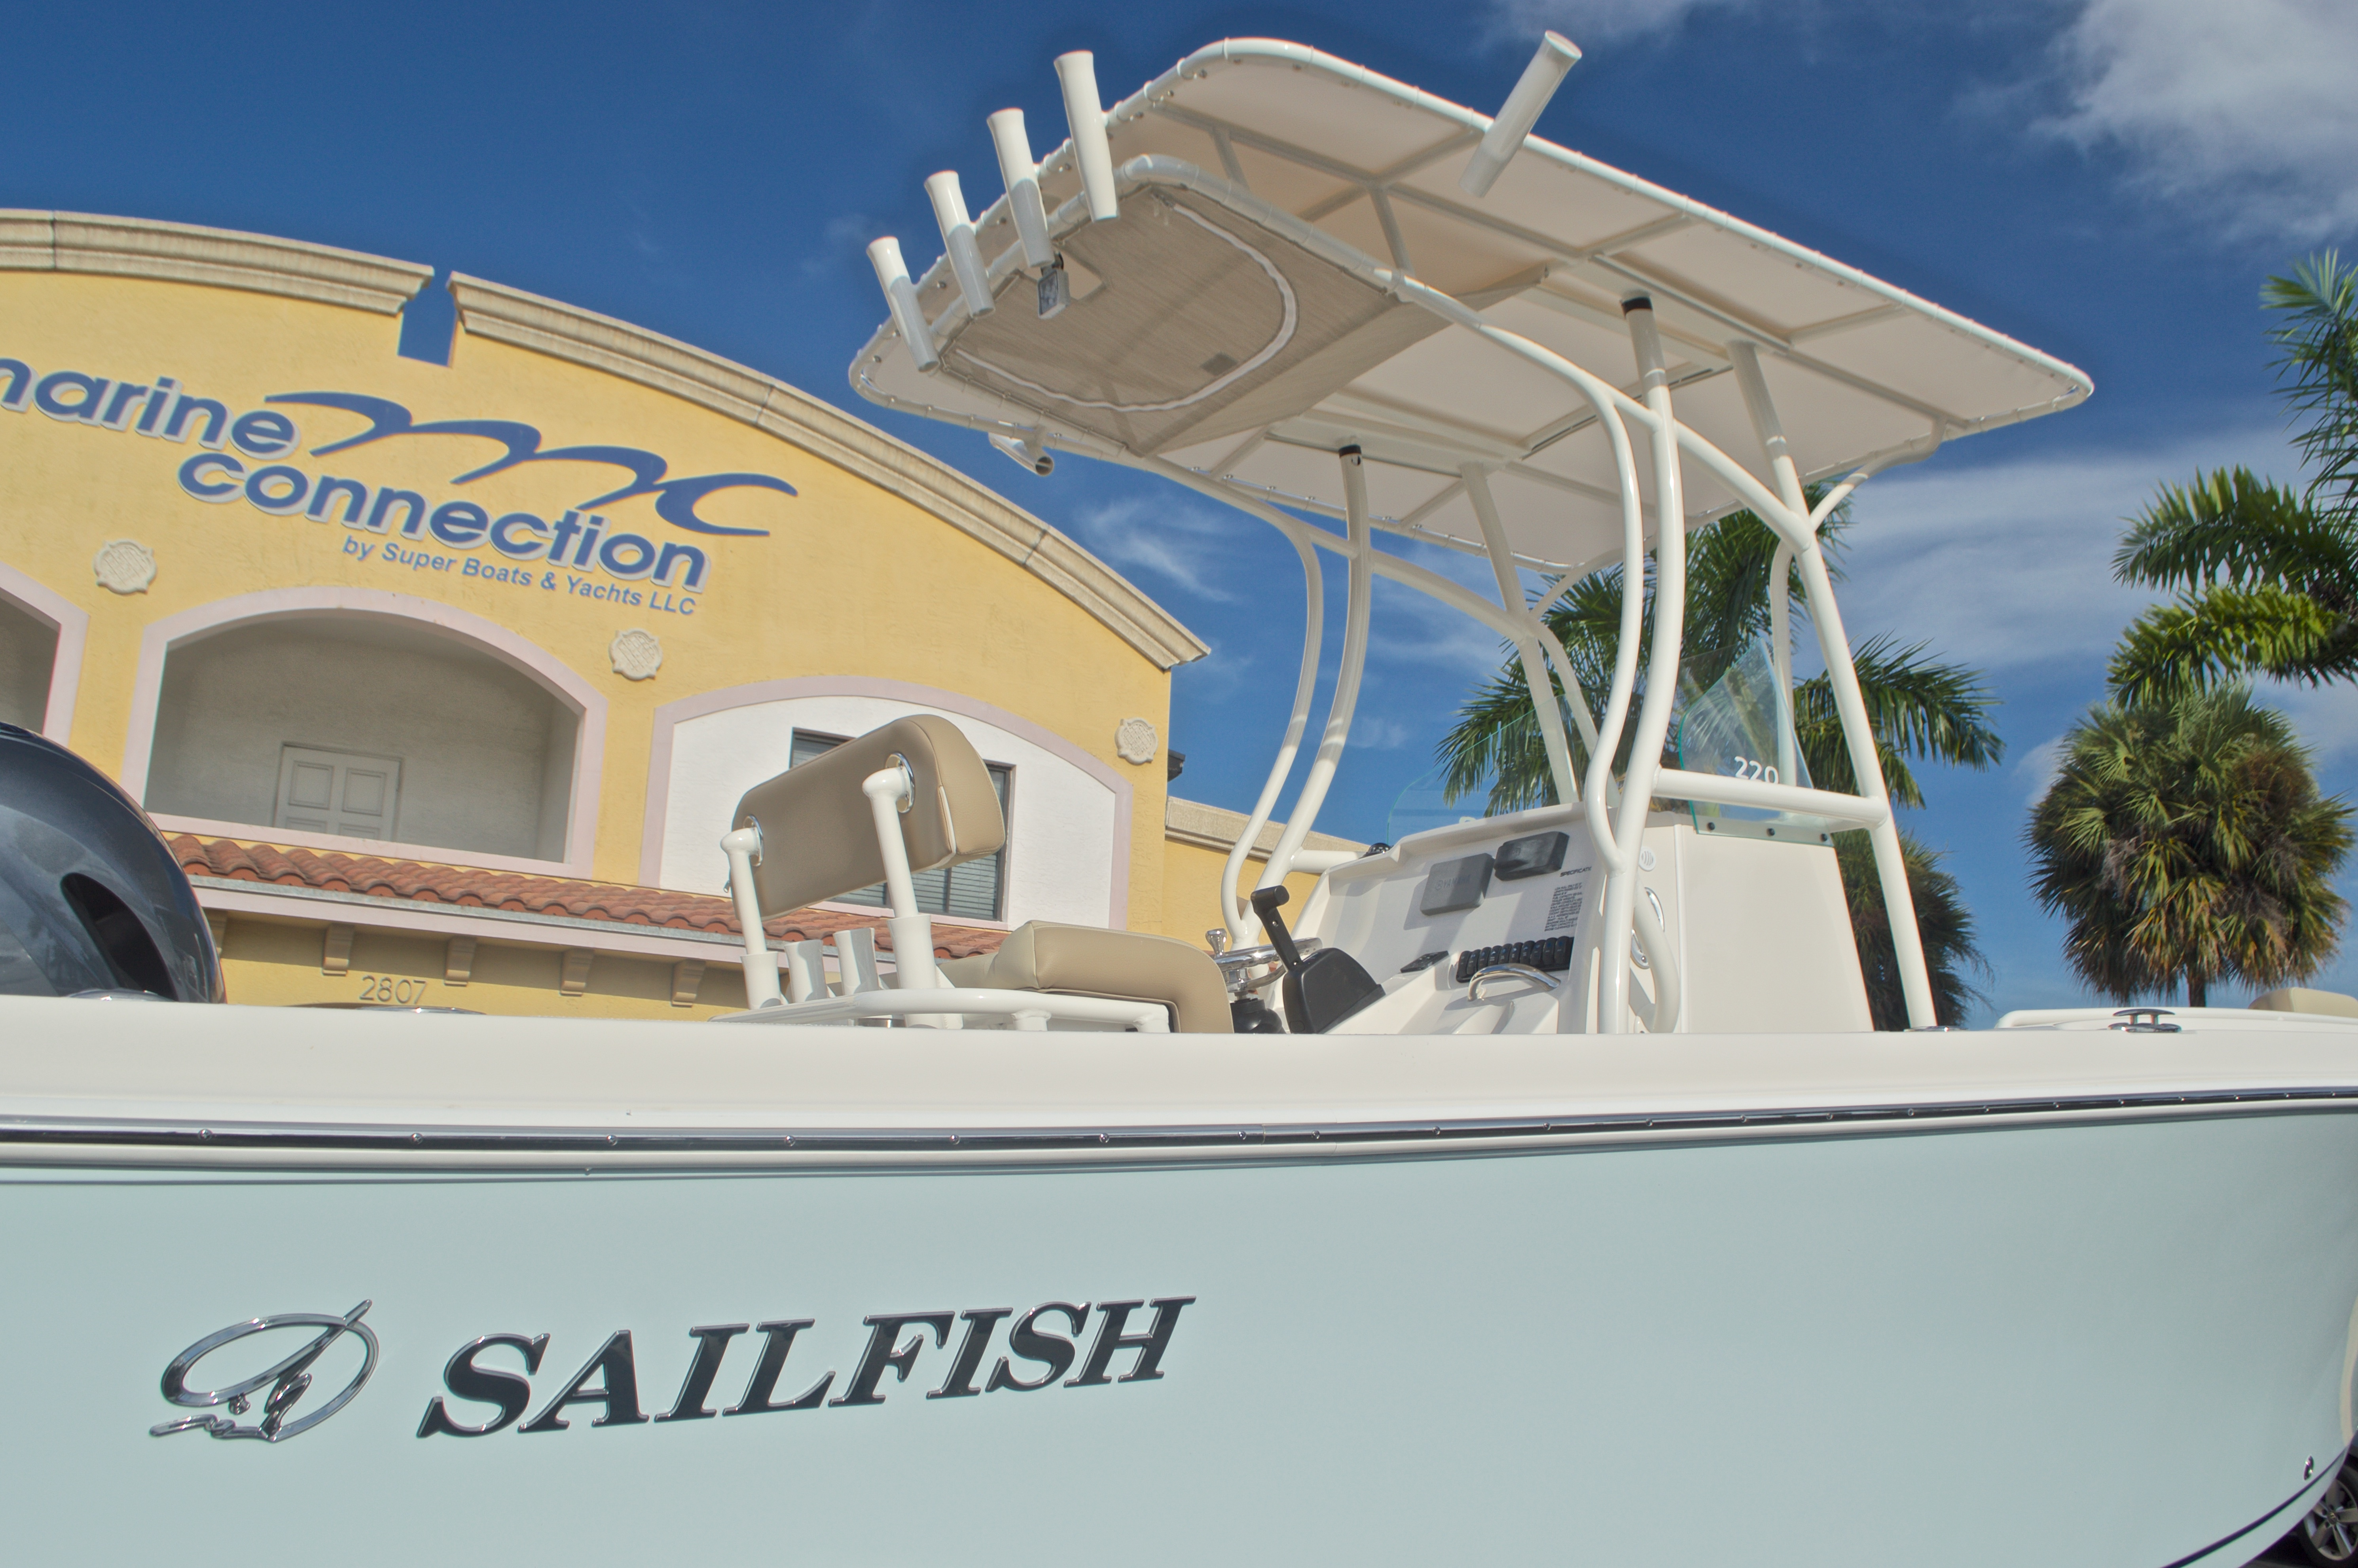 Thumbnail 9 for New 2017 Sailfish 220 CC Center Console boat for sale in Miami, FL